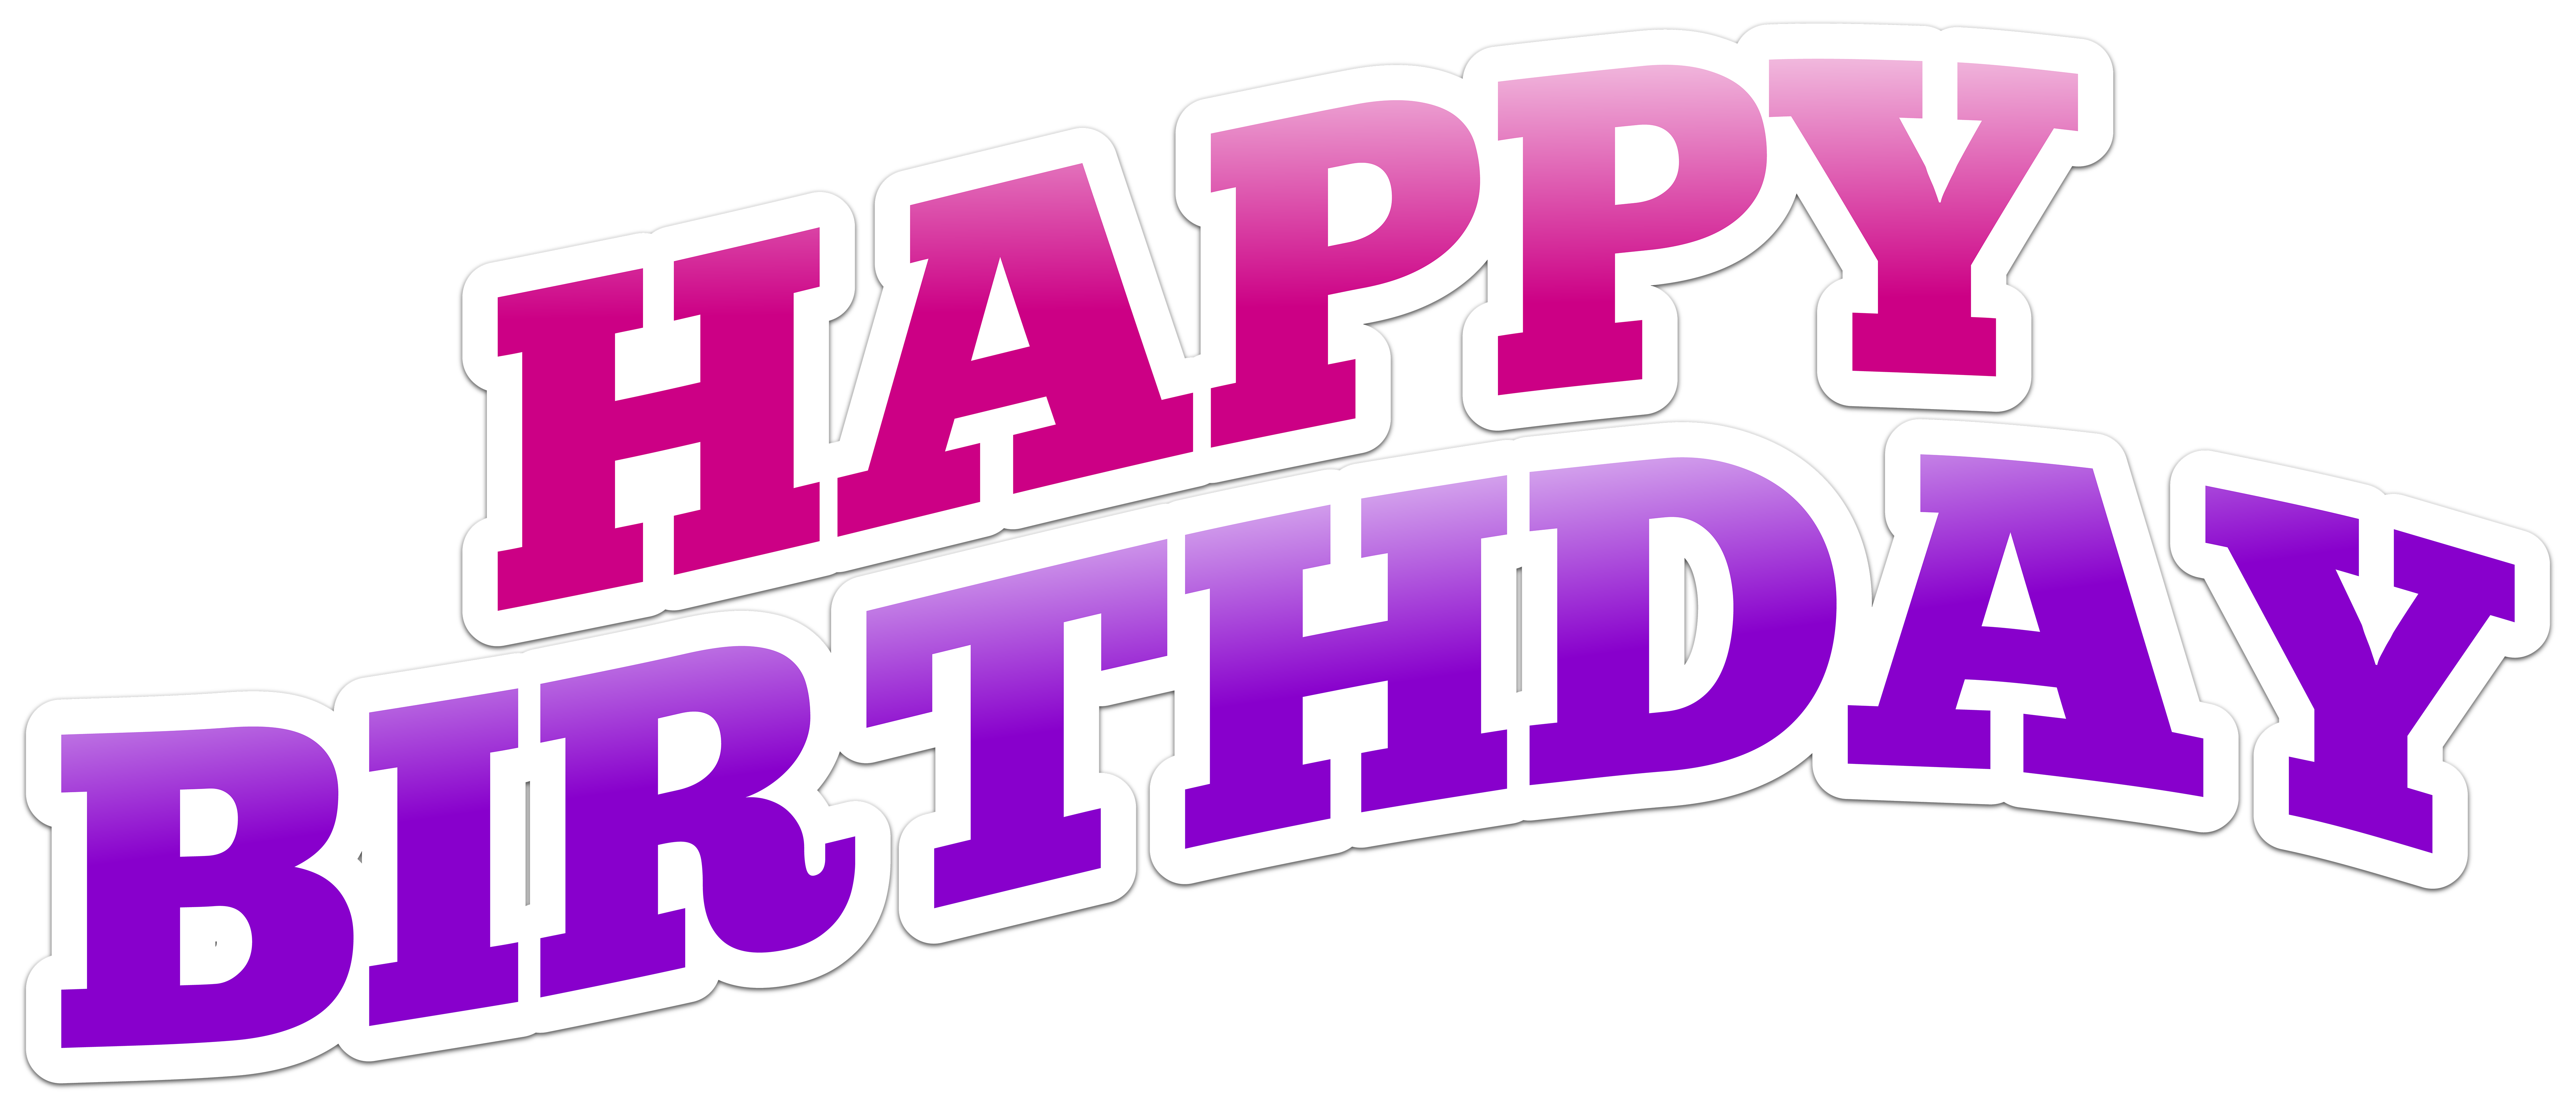 Happy birthday text art clipart black and white Happy Birthday Text PNG Clip Art Image | Gallery Yopriceville ... black and white